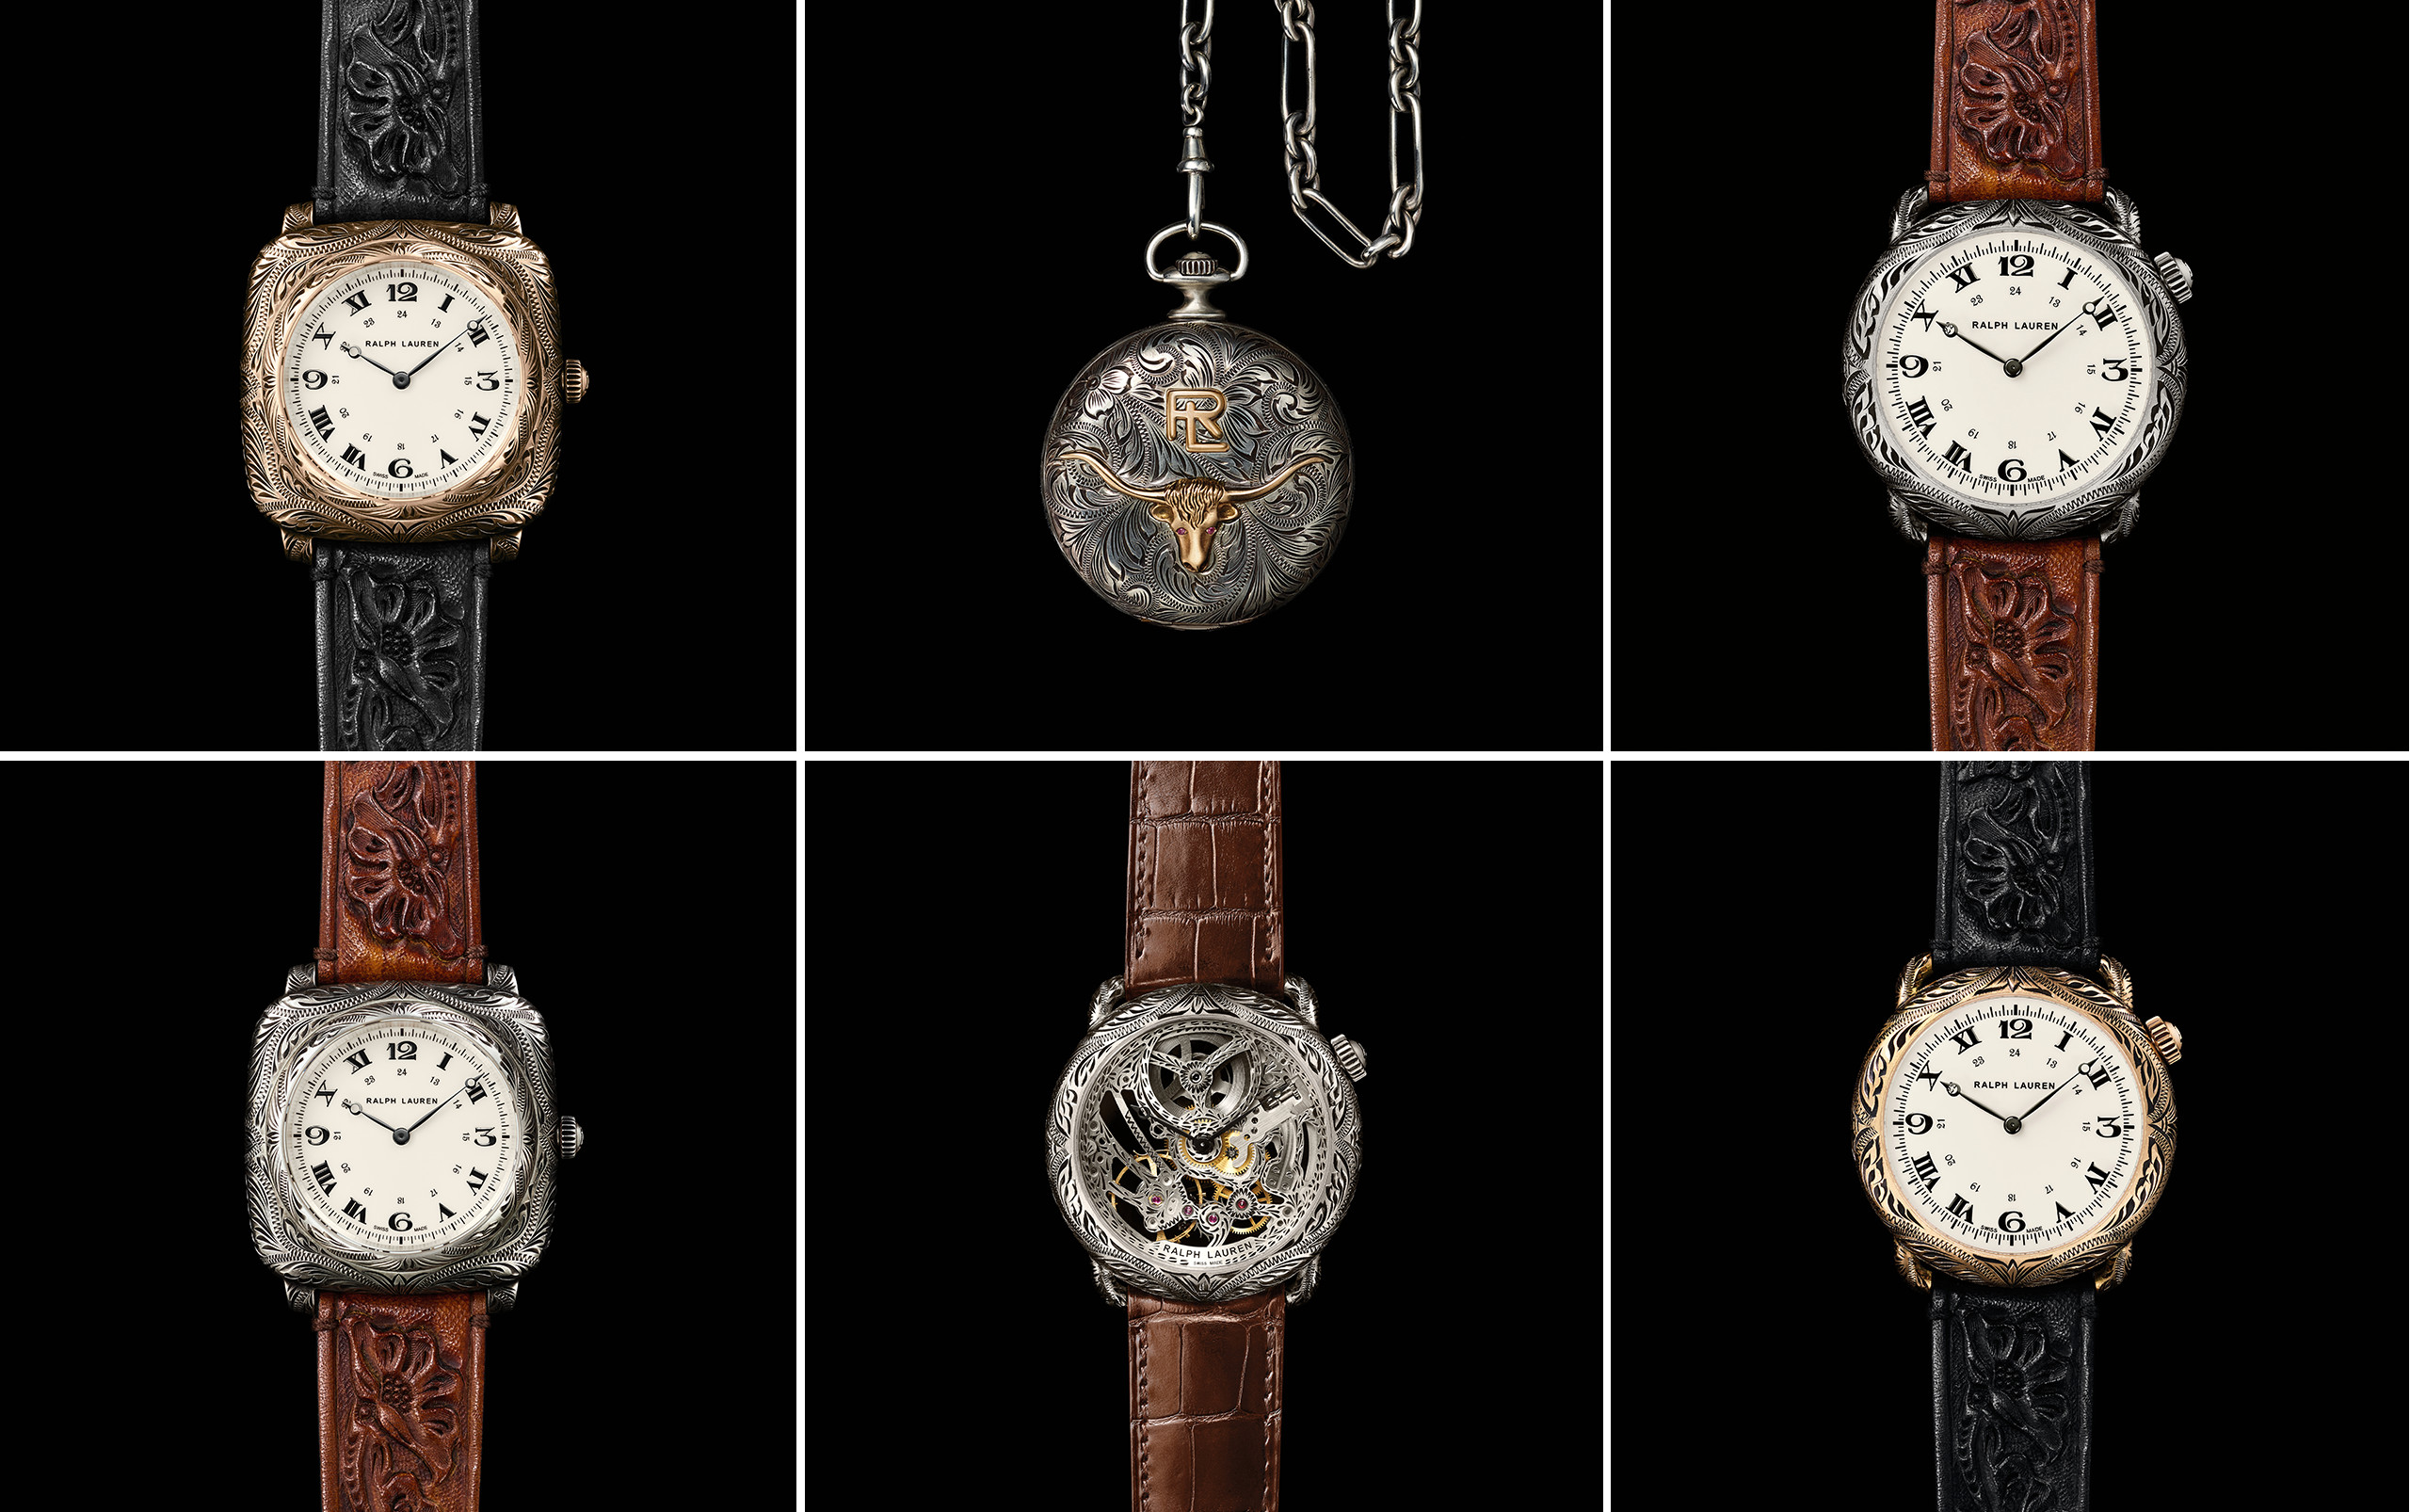 The six models in the American Western watch collection, clockwise, from top left: Rose Gold Cushion, Pocket, Sterling Silver Round, Rose Gold Round, Round Skeleton, Sterling Silver Cushion